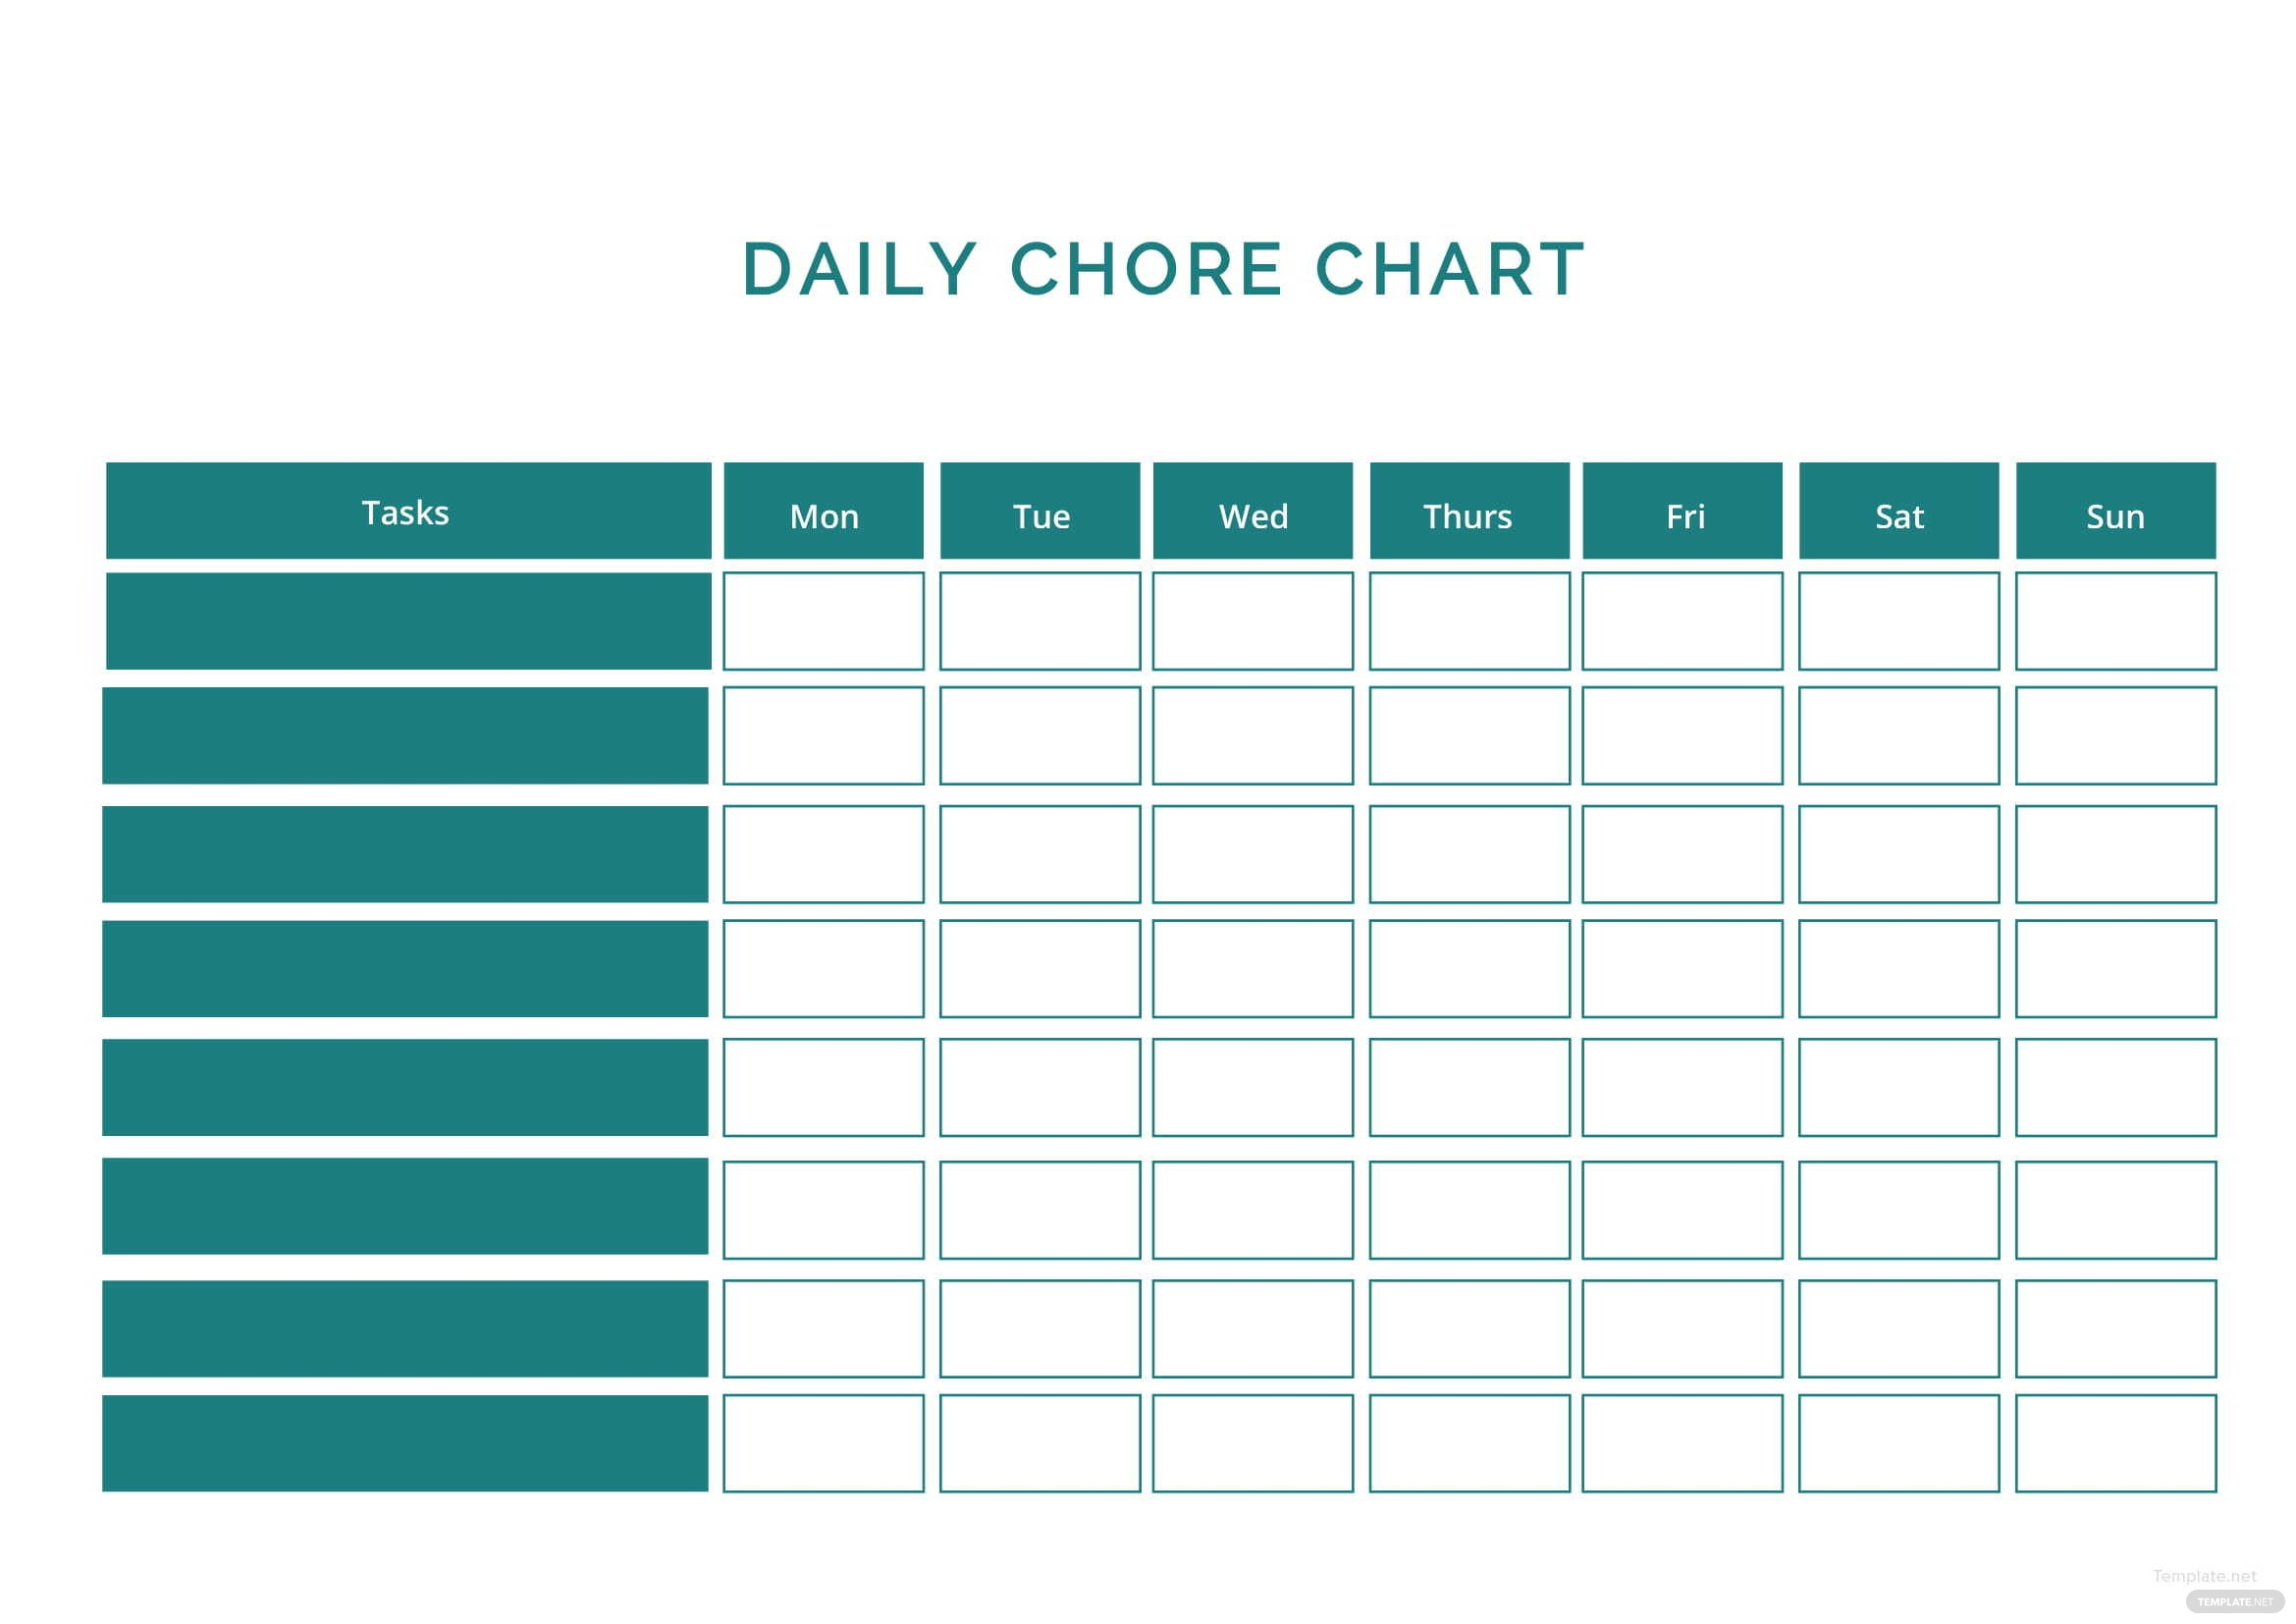 Daily Chore Chart Template in Microsoft Word   Template.net